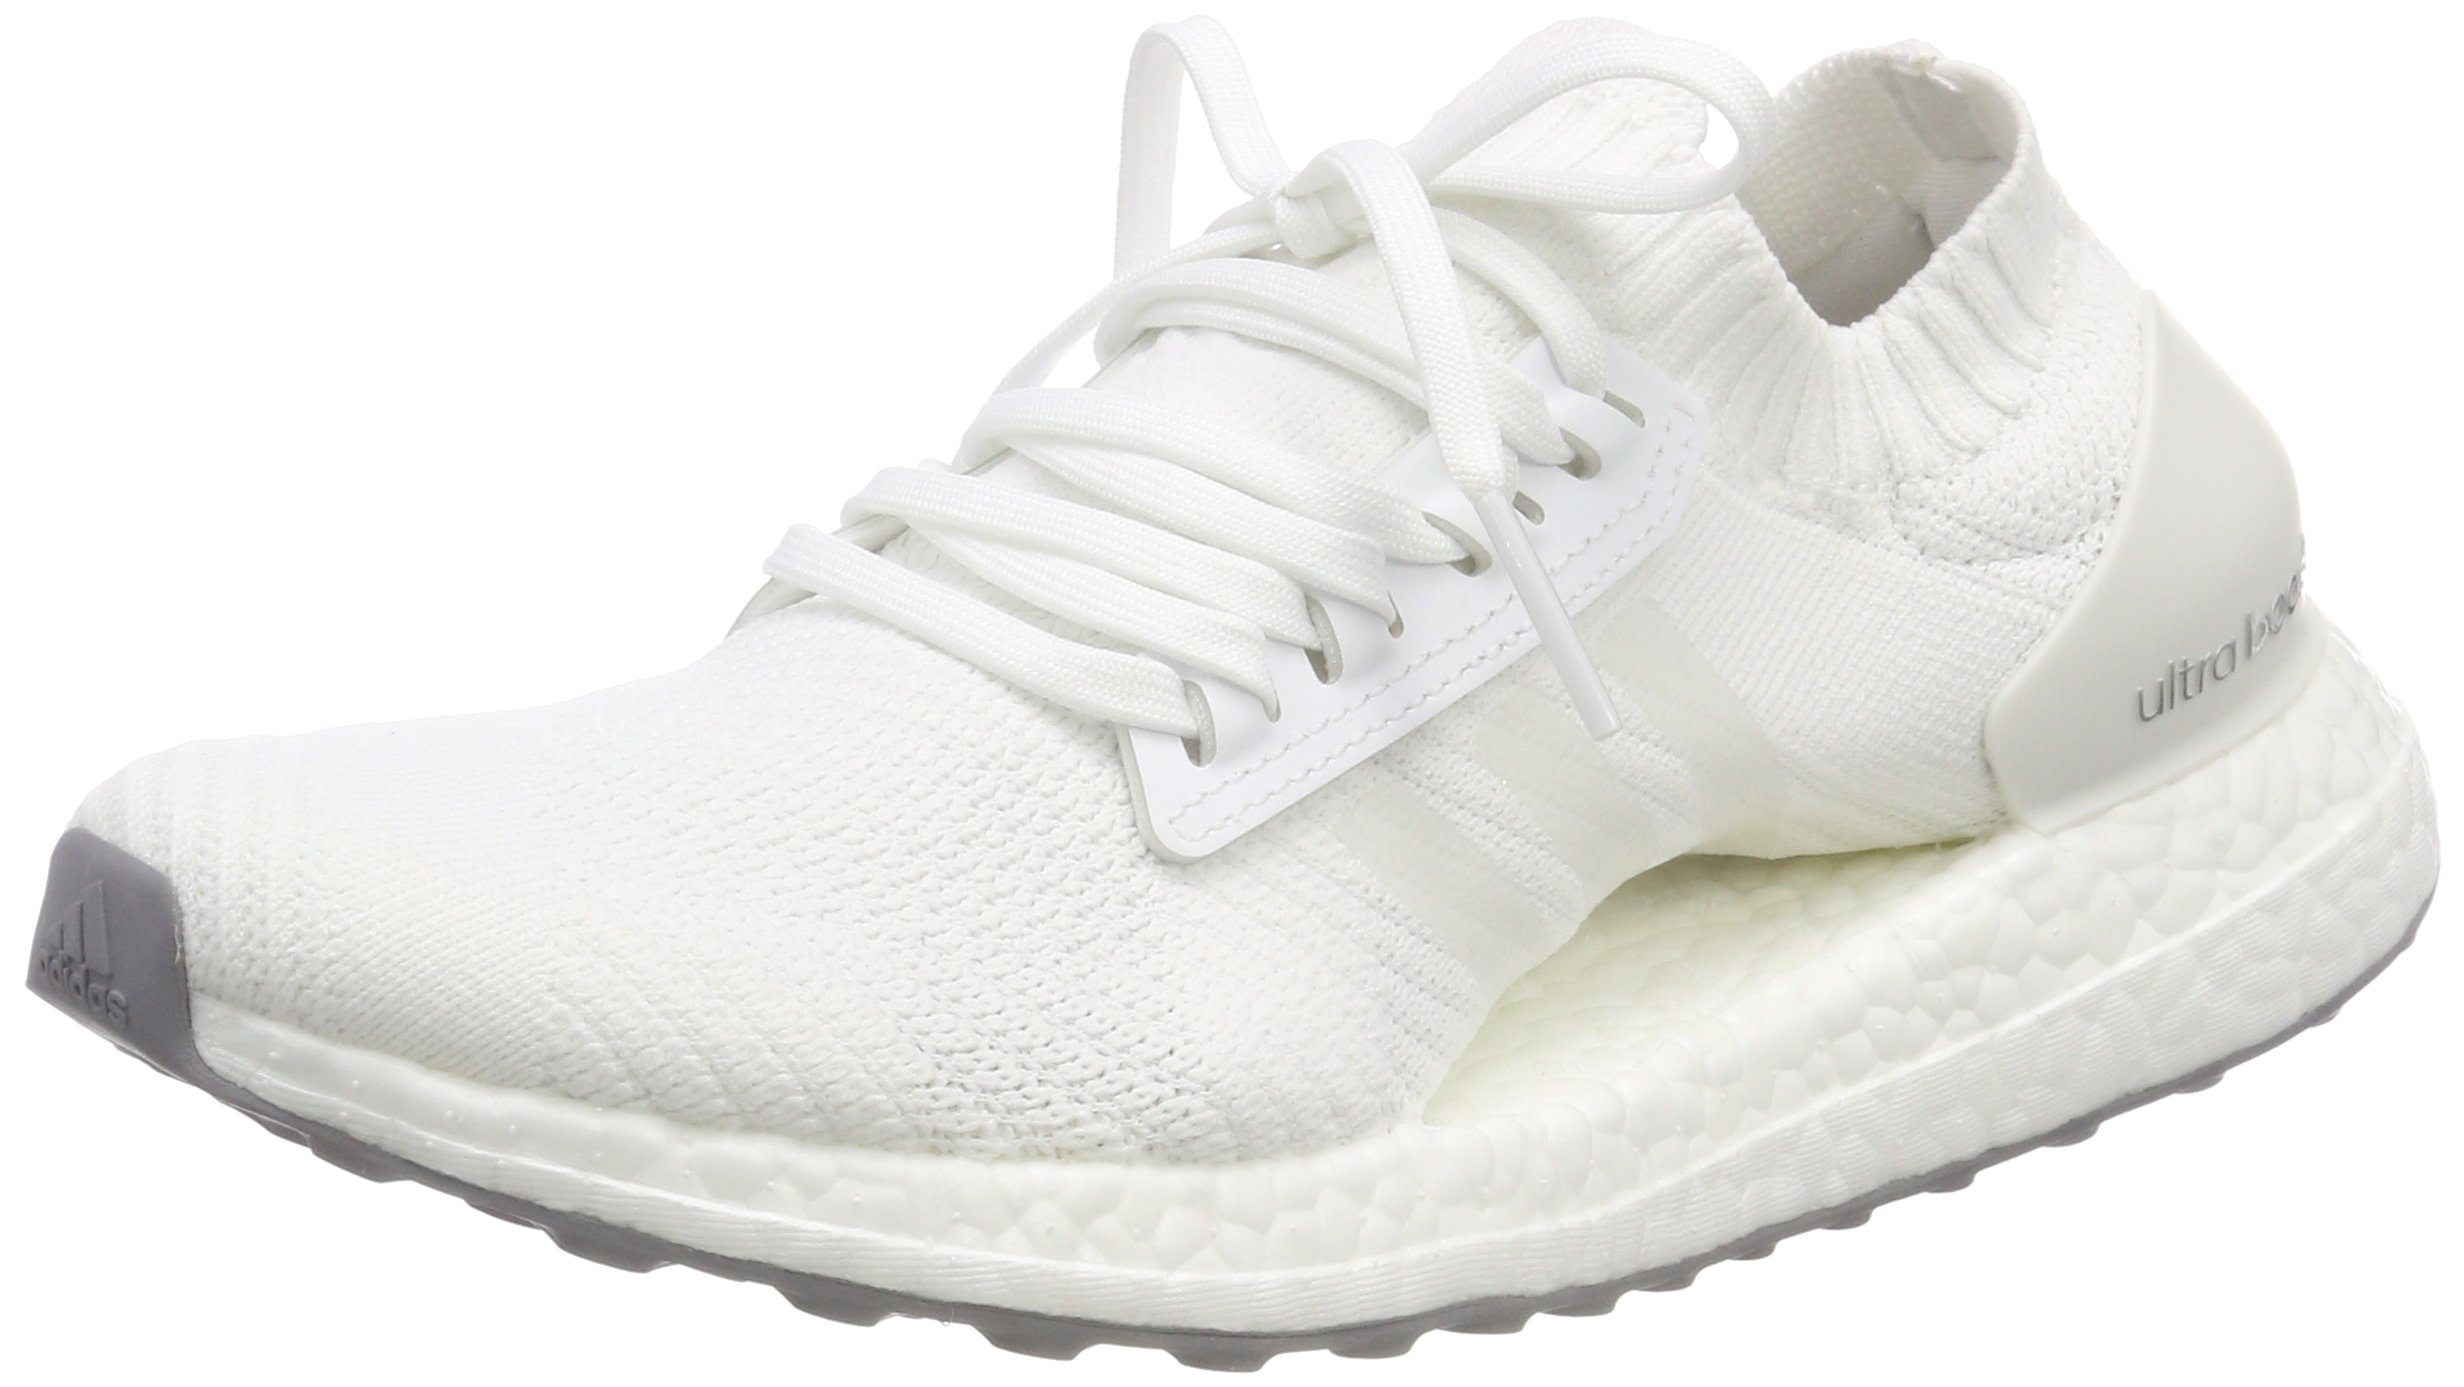 adidas UltraBOOST ST Women's Running Shoes SS18 Women's